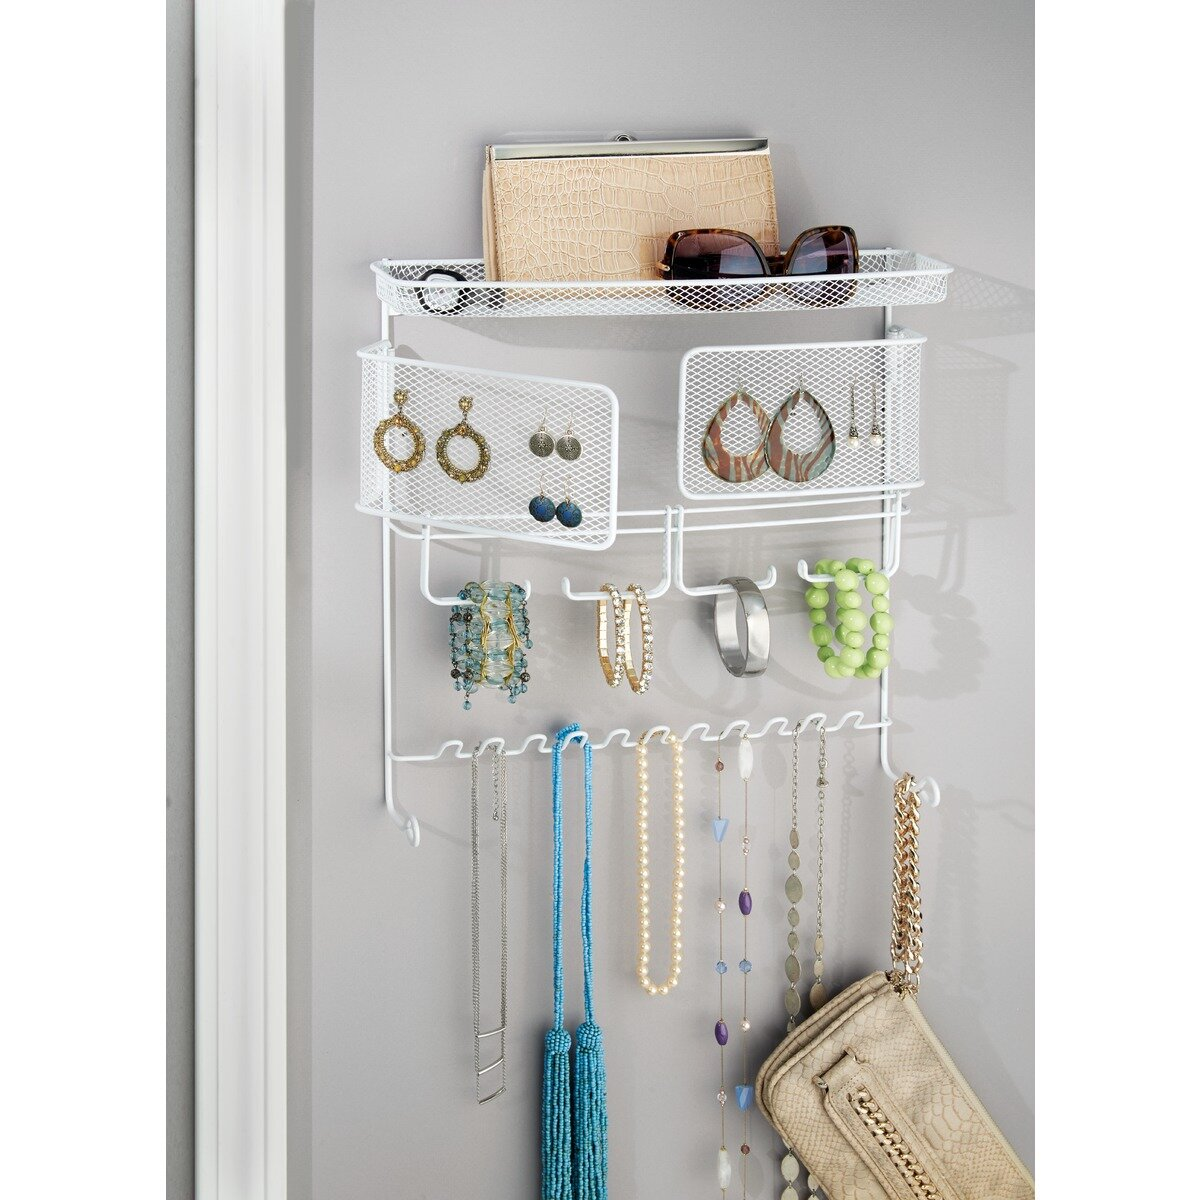 Jewelry Organizers Wall: InterDesign Classico Wall Mount Jewelry And Accessory